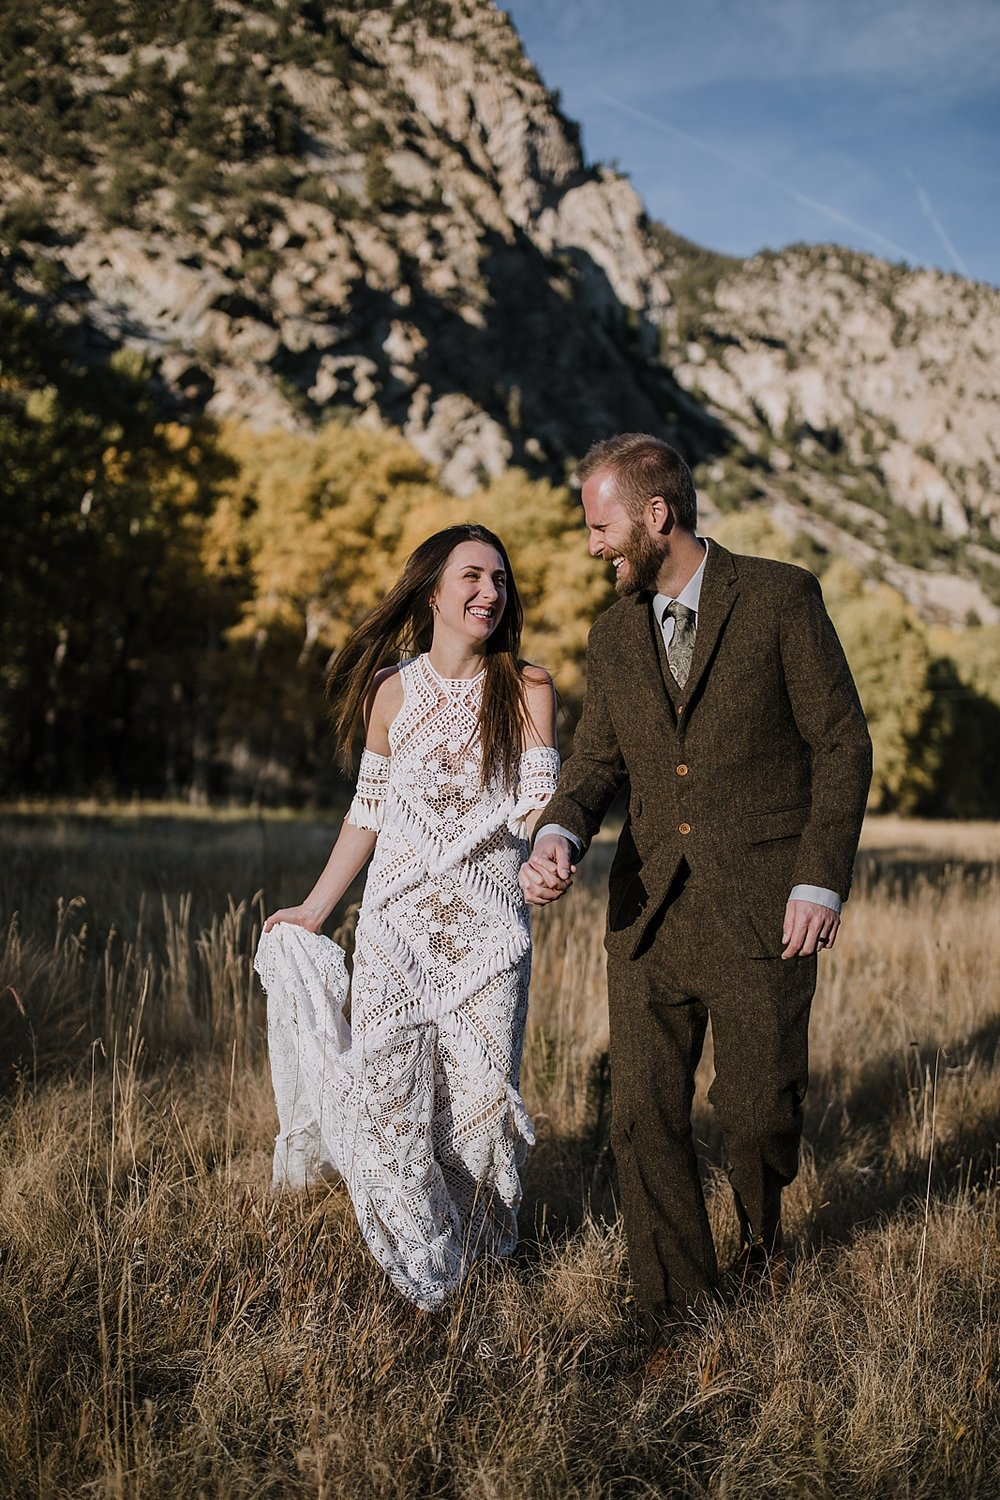 rue de seine dress, couple hiking, norway elopement, post elopement celebration, wedding in the woods, buena vista elopement, buena vista wedding, nathrop colorado wedding, adventurous elopement